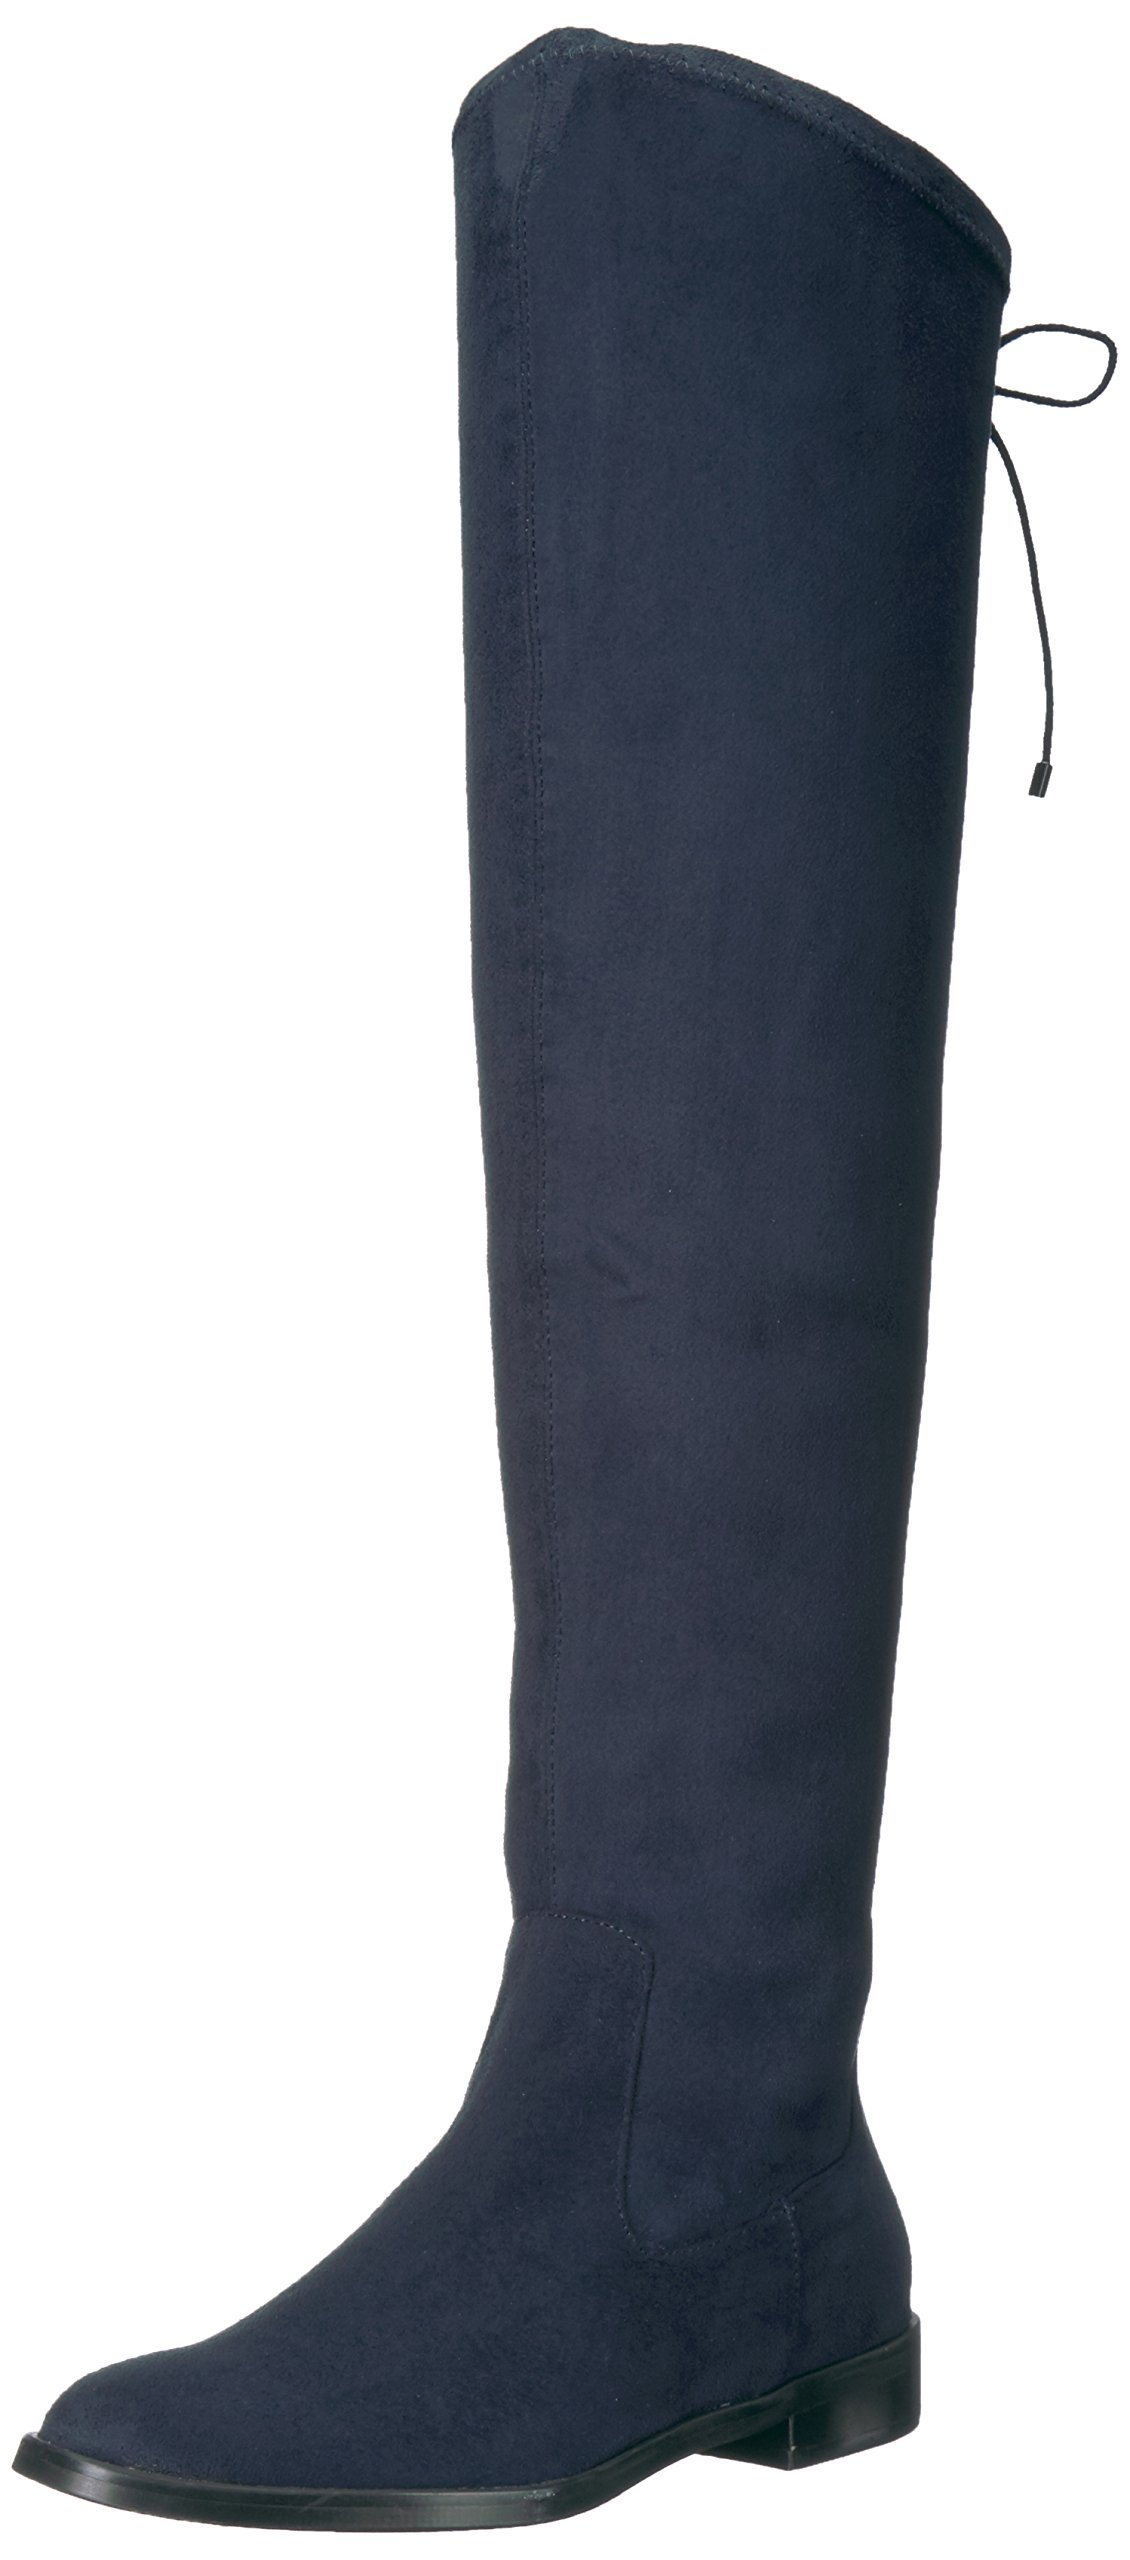 Kenneth Cole REACTION Women's Wind Chime Over The Knee Stretch Low Heel Winter Boot, Navy, 9 M US